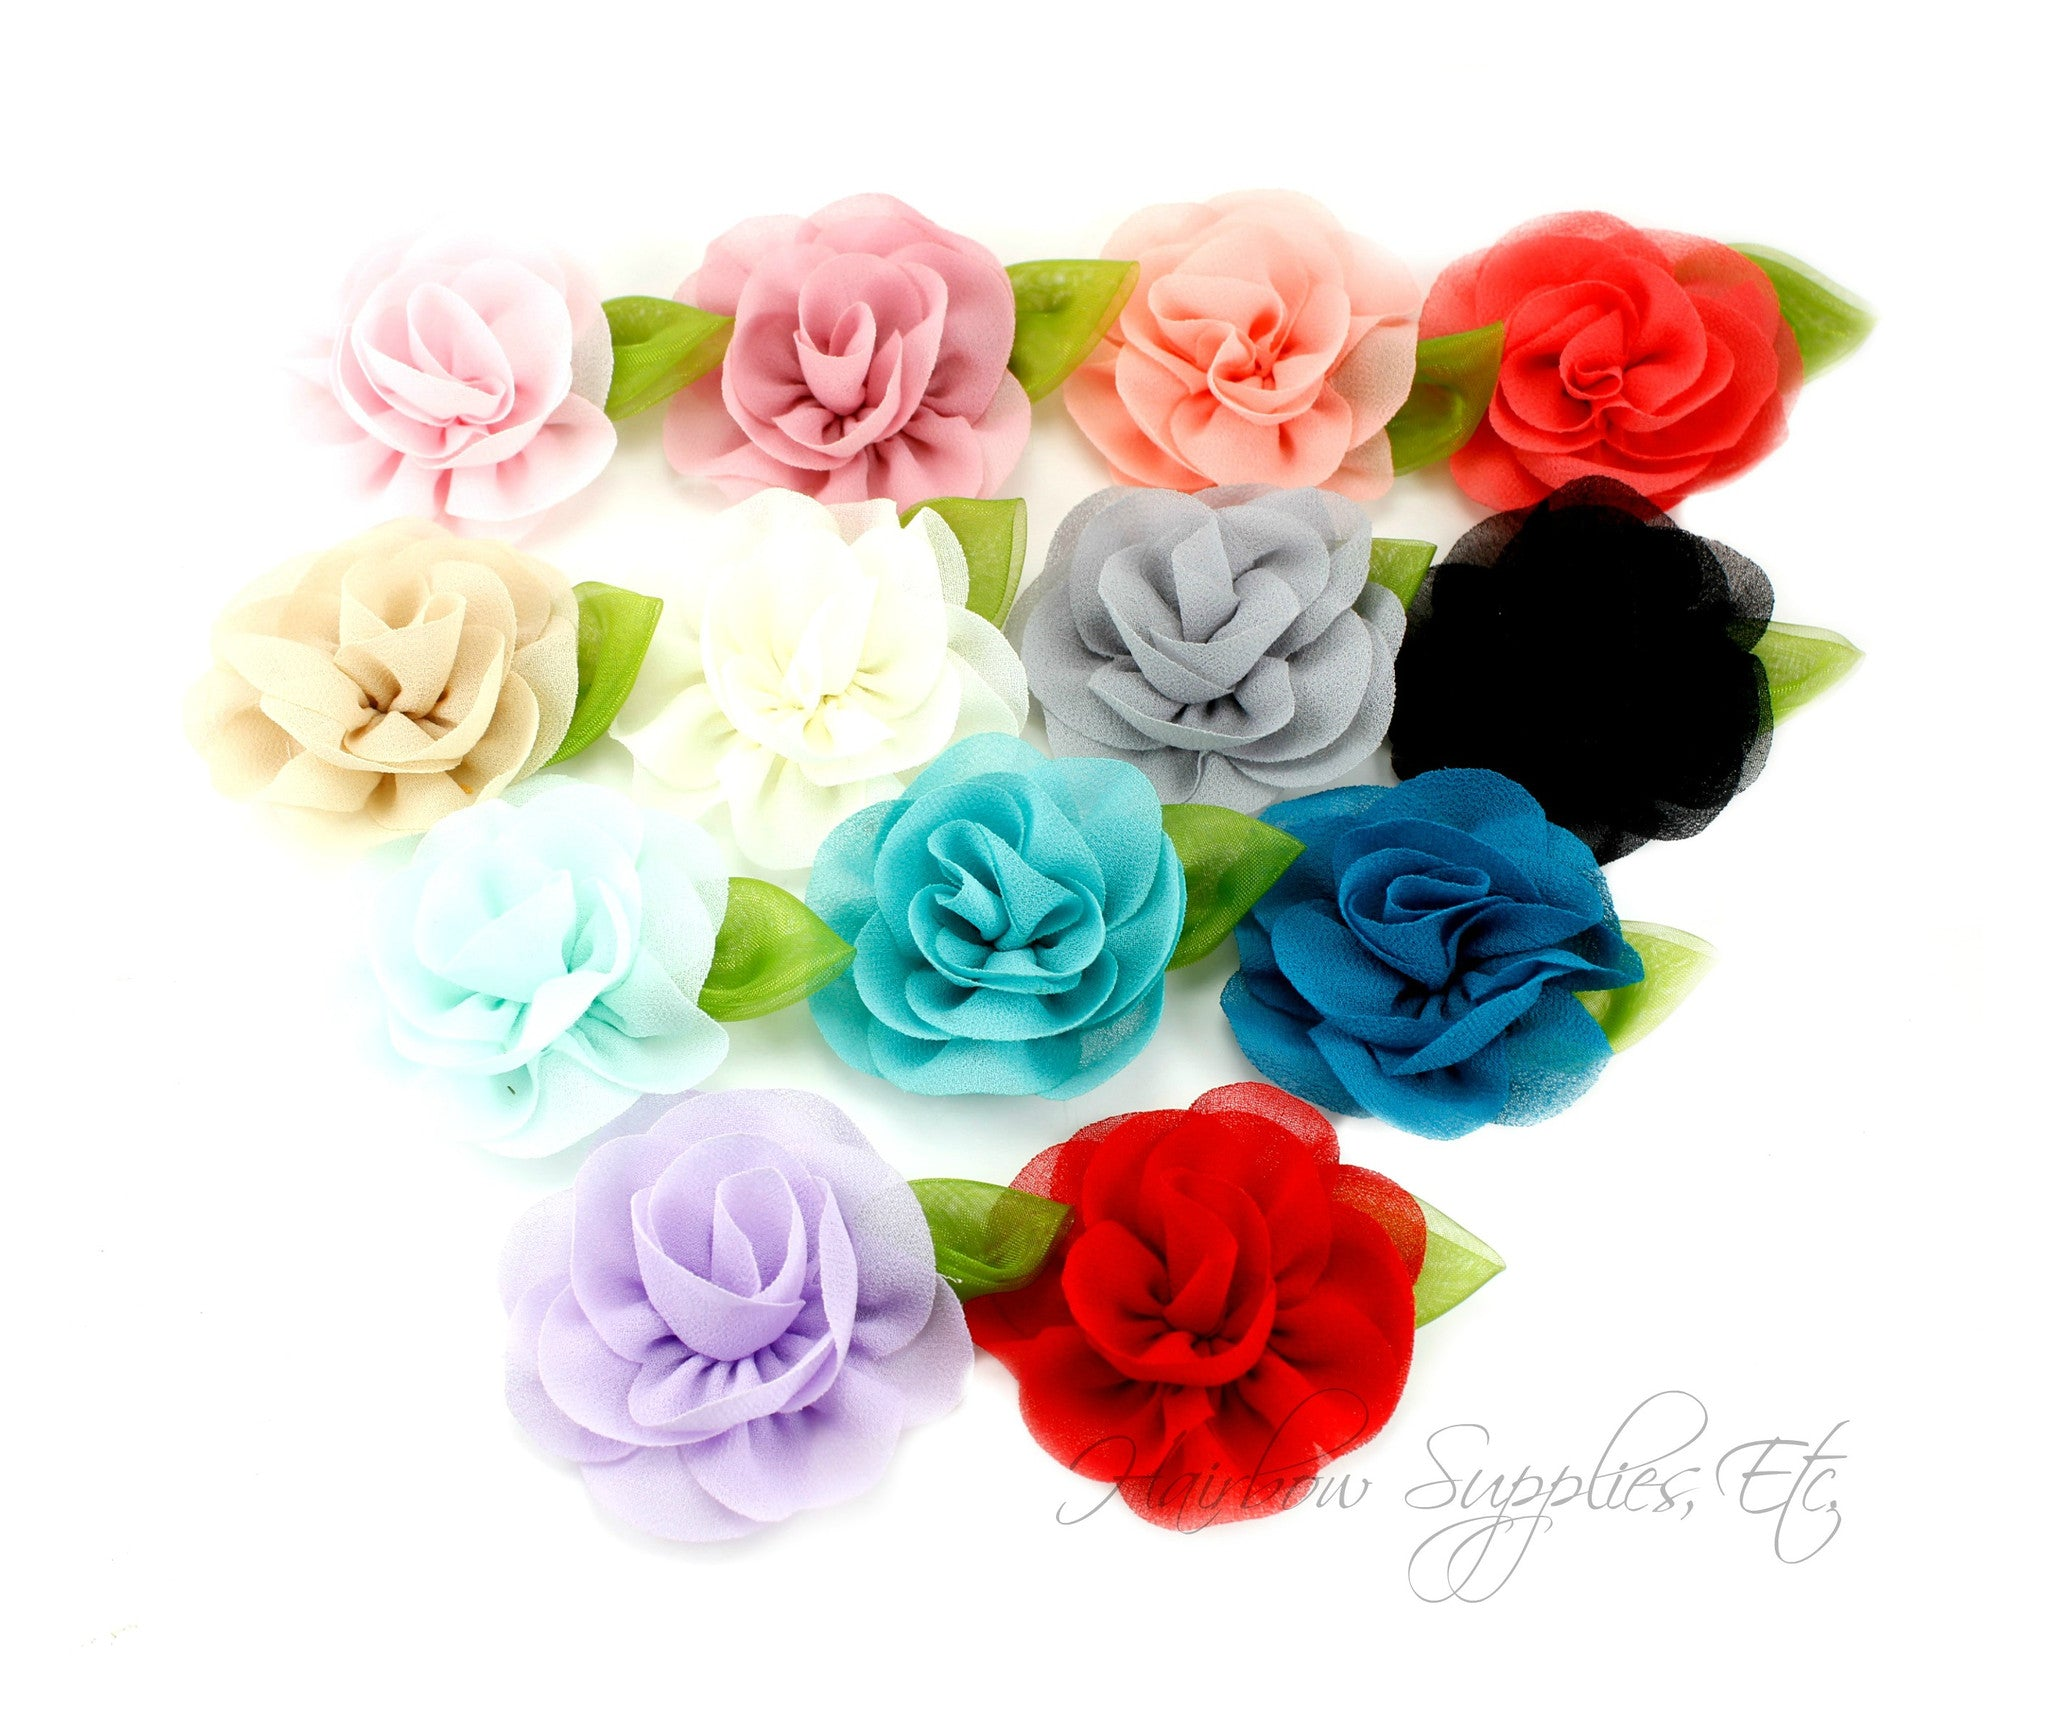 Candlelight rose chiffon flower - 2 inch